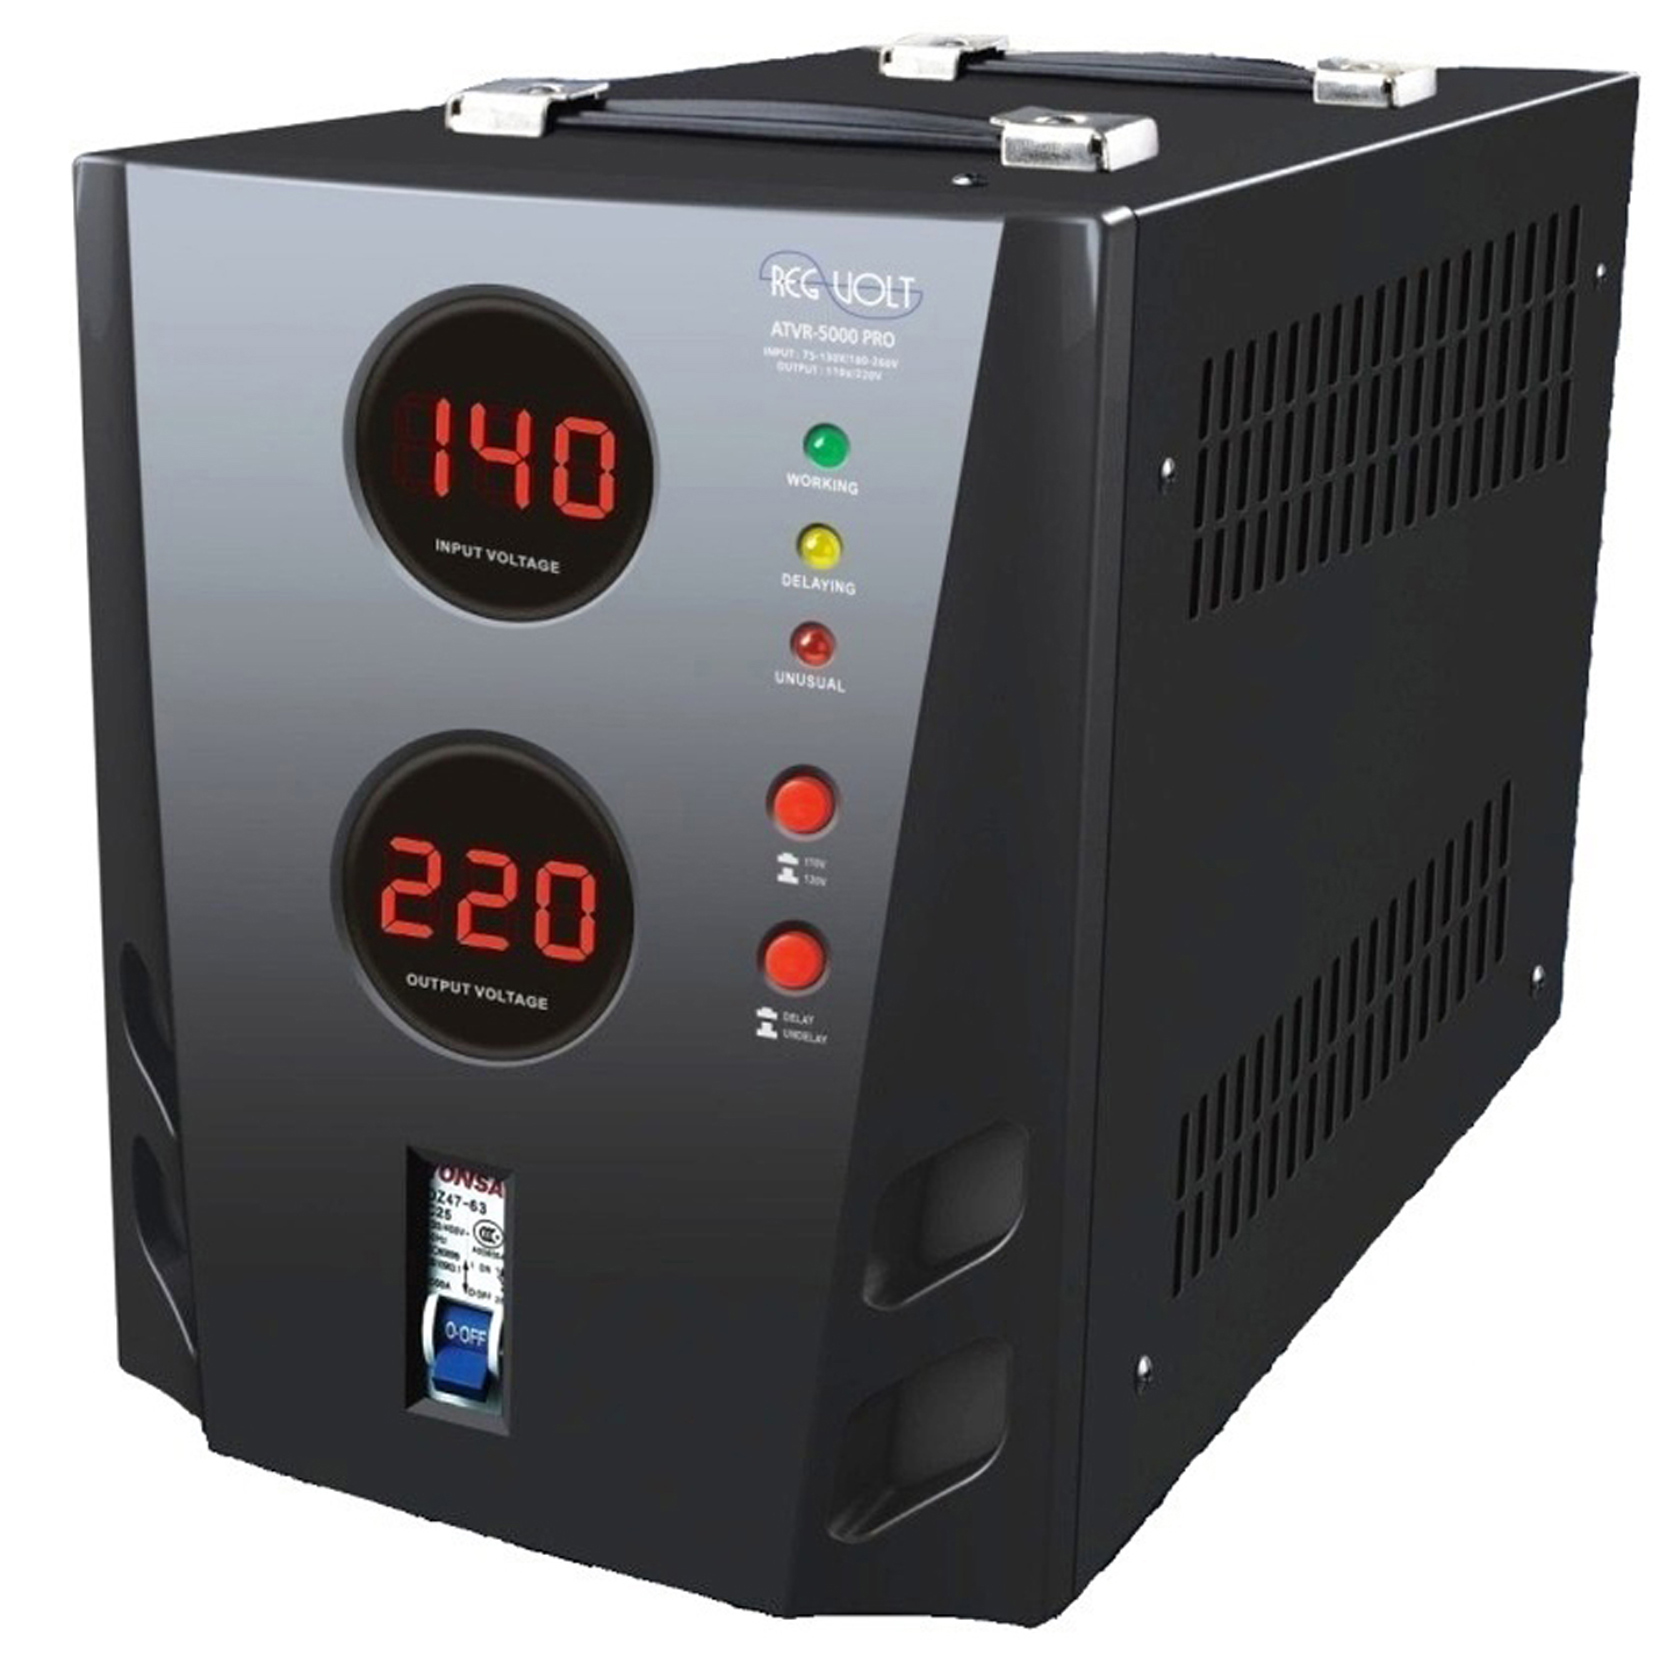 Regvolt Atvr 3000 Deluxe Automatic Voltage The Power You Need About 5000 Watt Converter Transformer Step Up Down 110v 220v